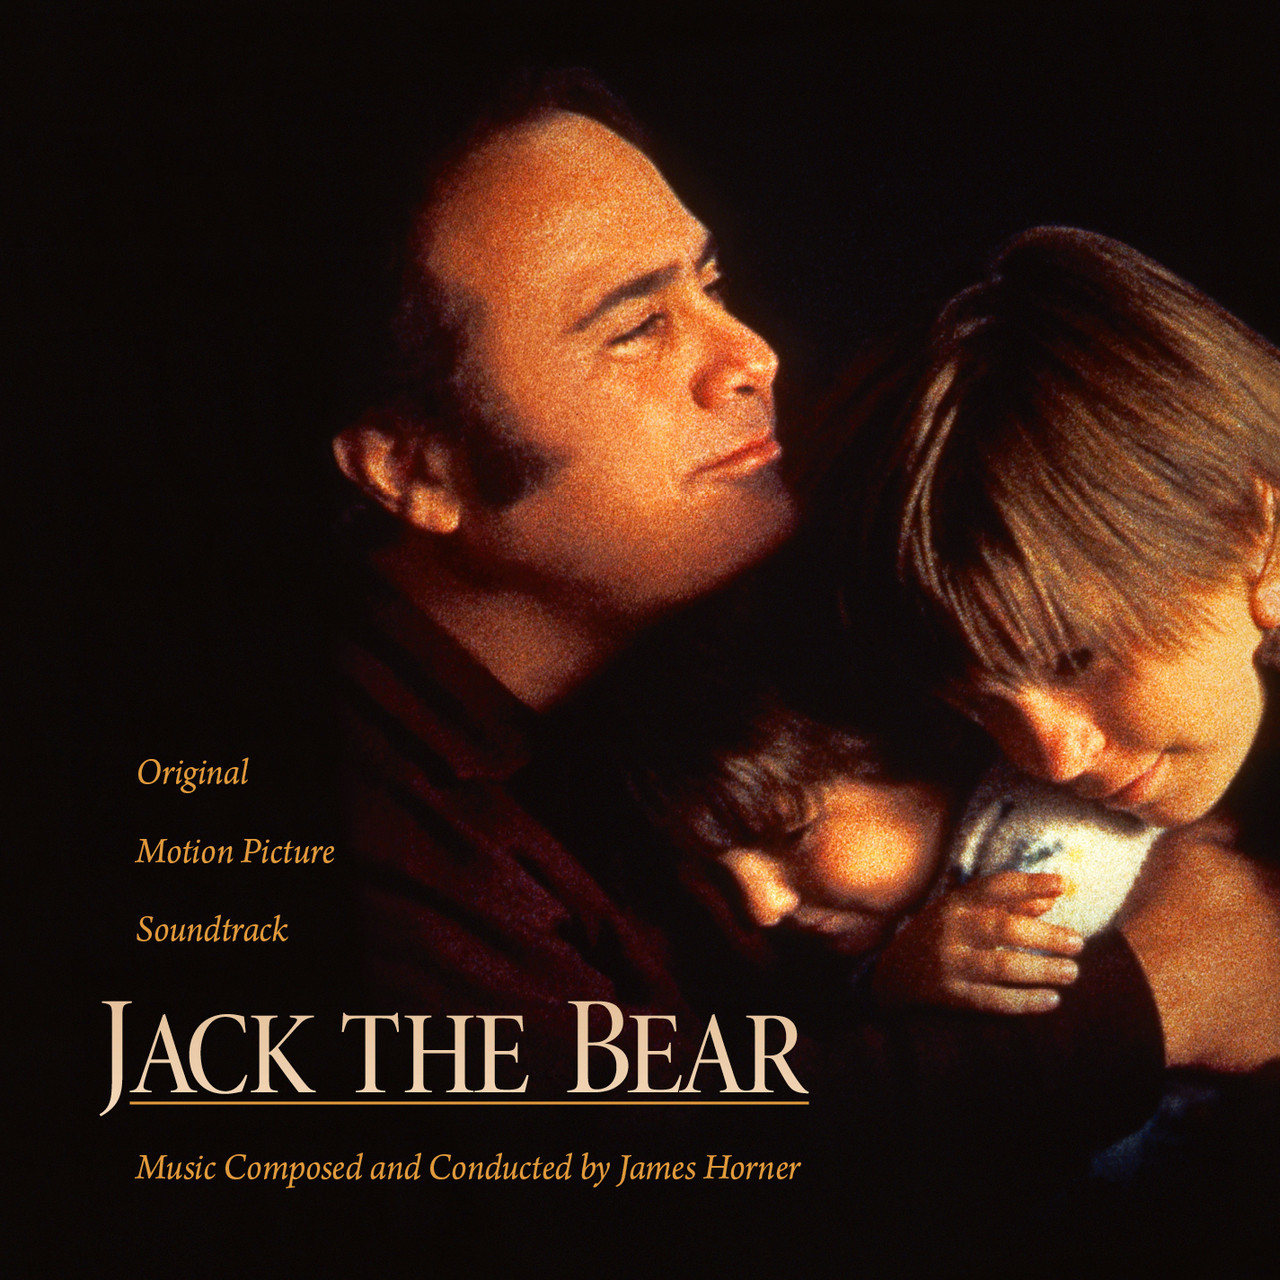 Jack_The_Bear_HQ__90163.1530589227.jpg?c